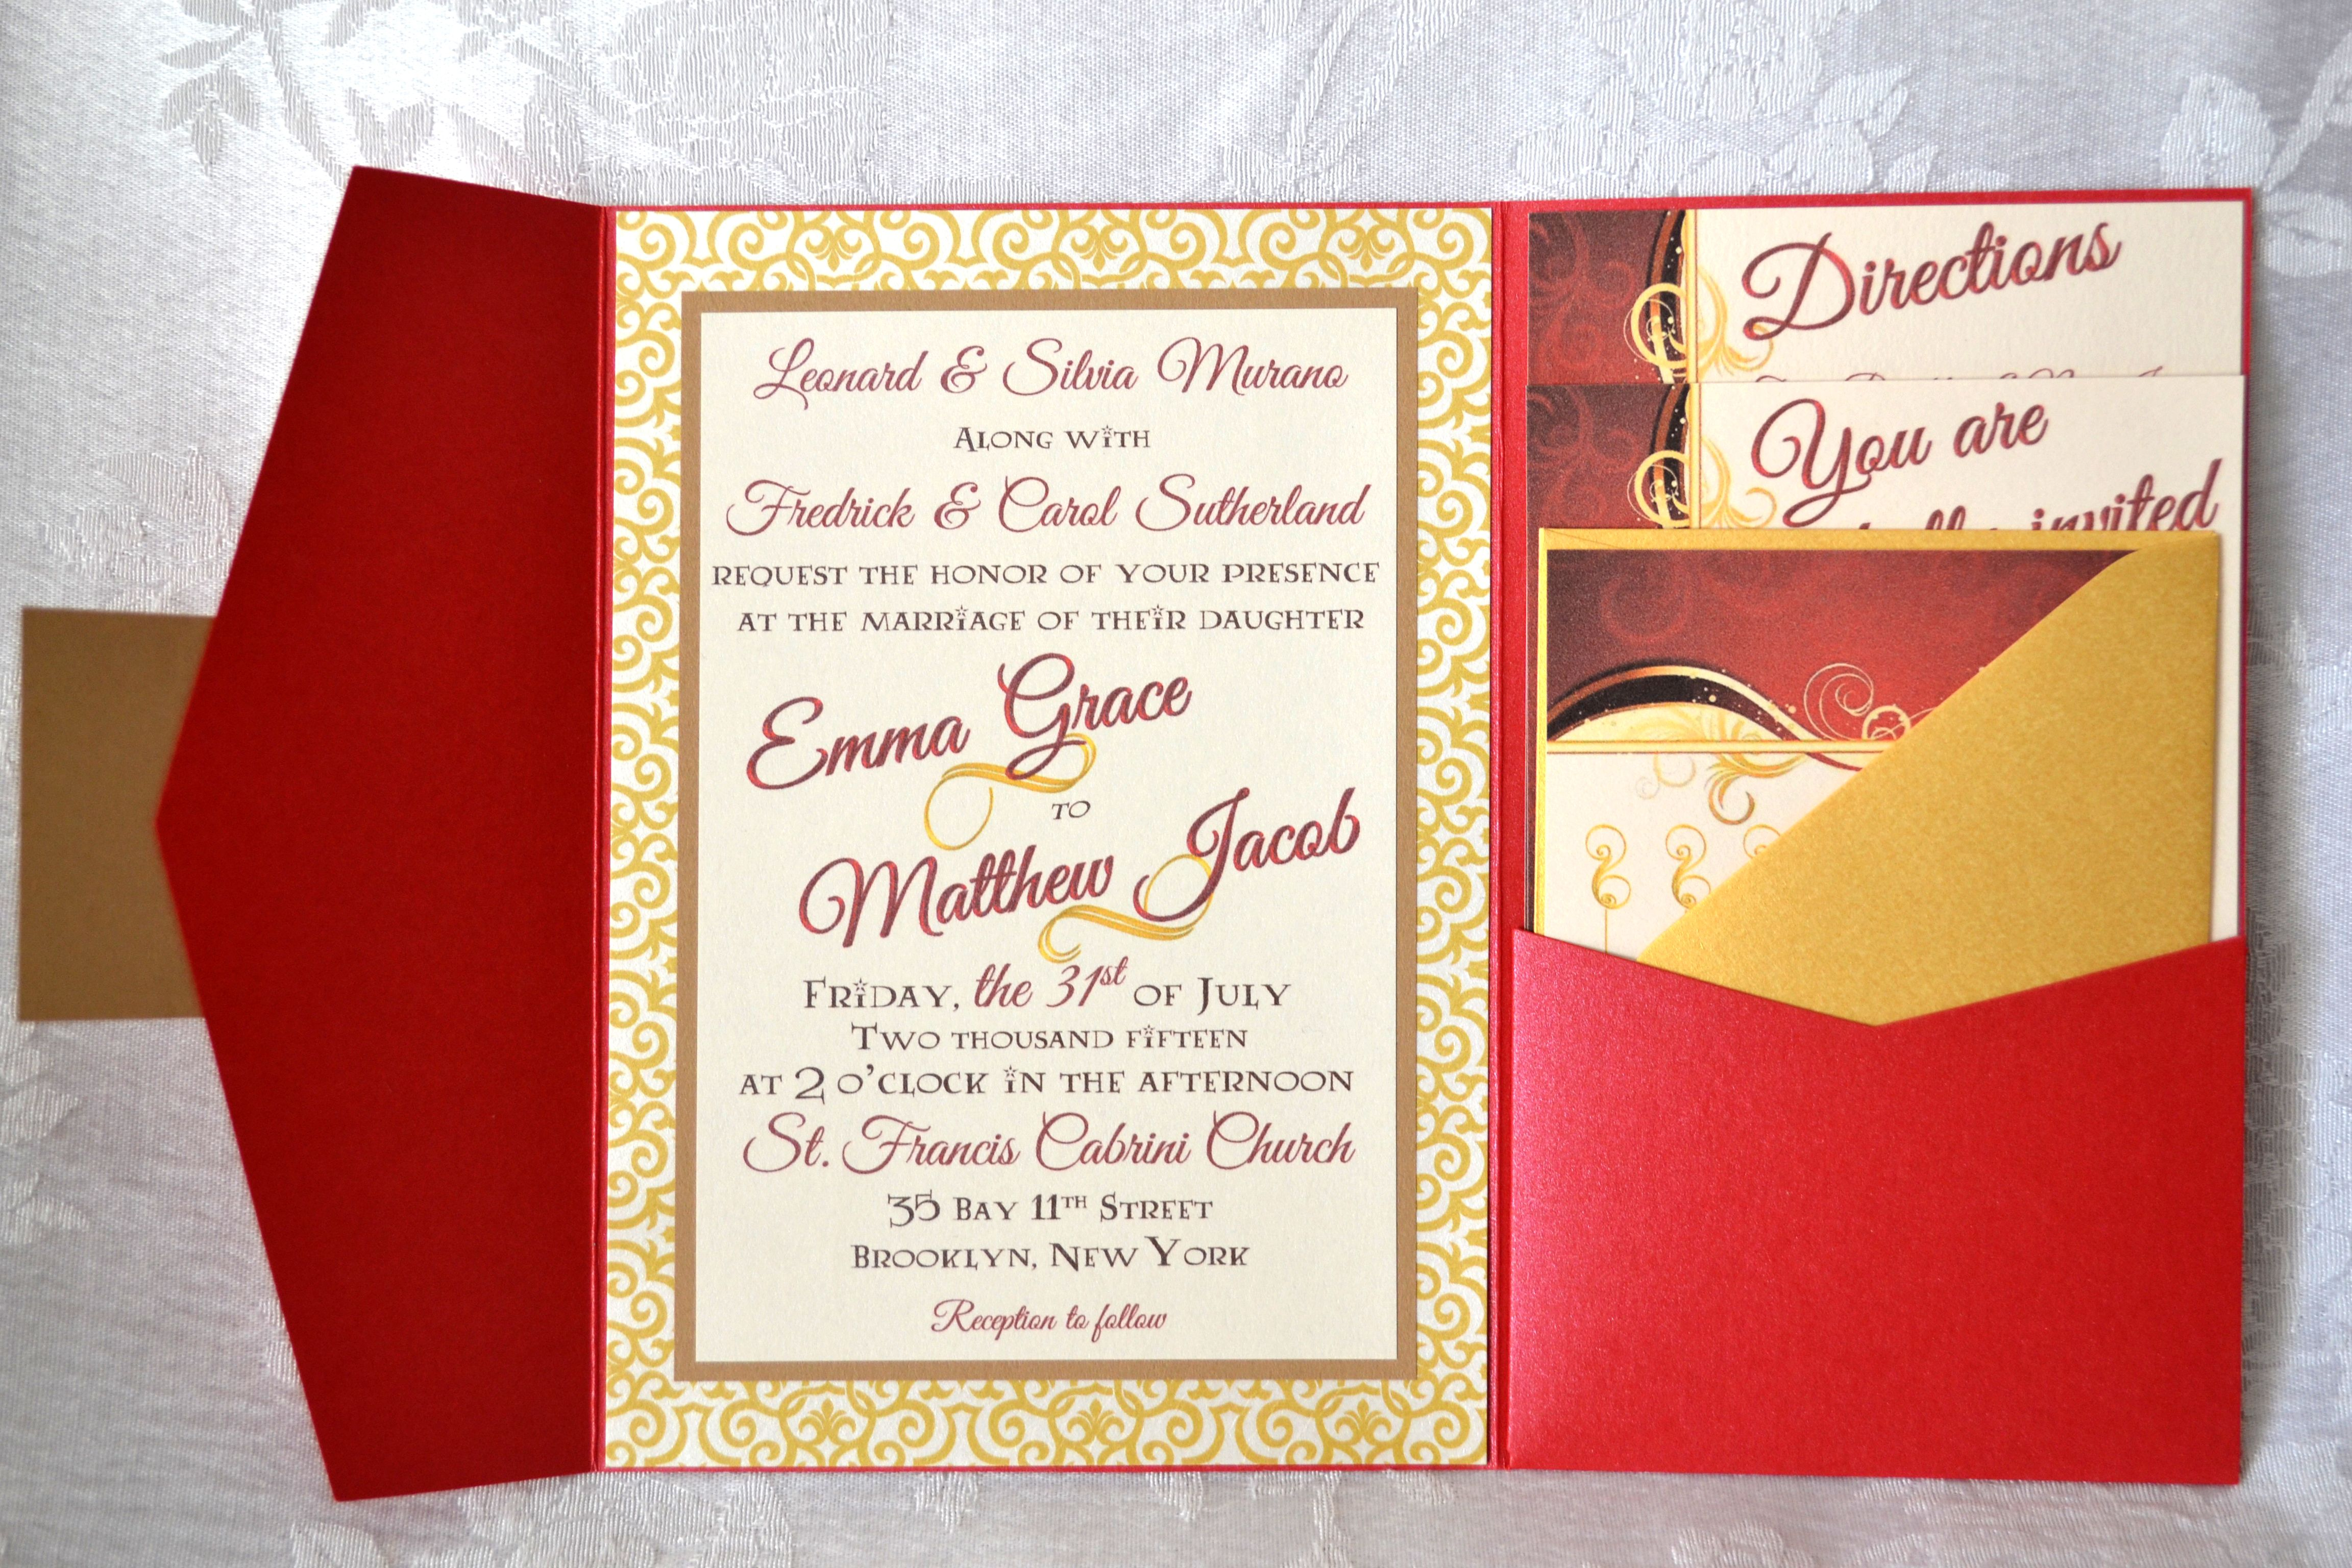 This wonderful couple are huge Harry Potter fans, and wanted a wedding invitation that reflected their love for the magical series. Being true Potterheads, they wanted a Gryffindor-styled invitation, without it seeming juvenile. A bright, metallic red pocket with brown and gold trim and accents capture the magic perfectly. Be sure to check out our Facebook at facebook.com/aninvitationforyou and follow us on Instagram @An_Invitation_For_You !